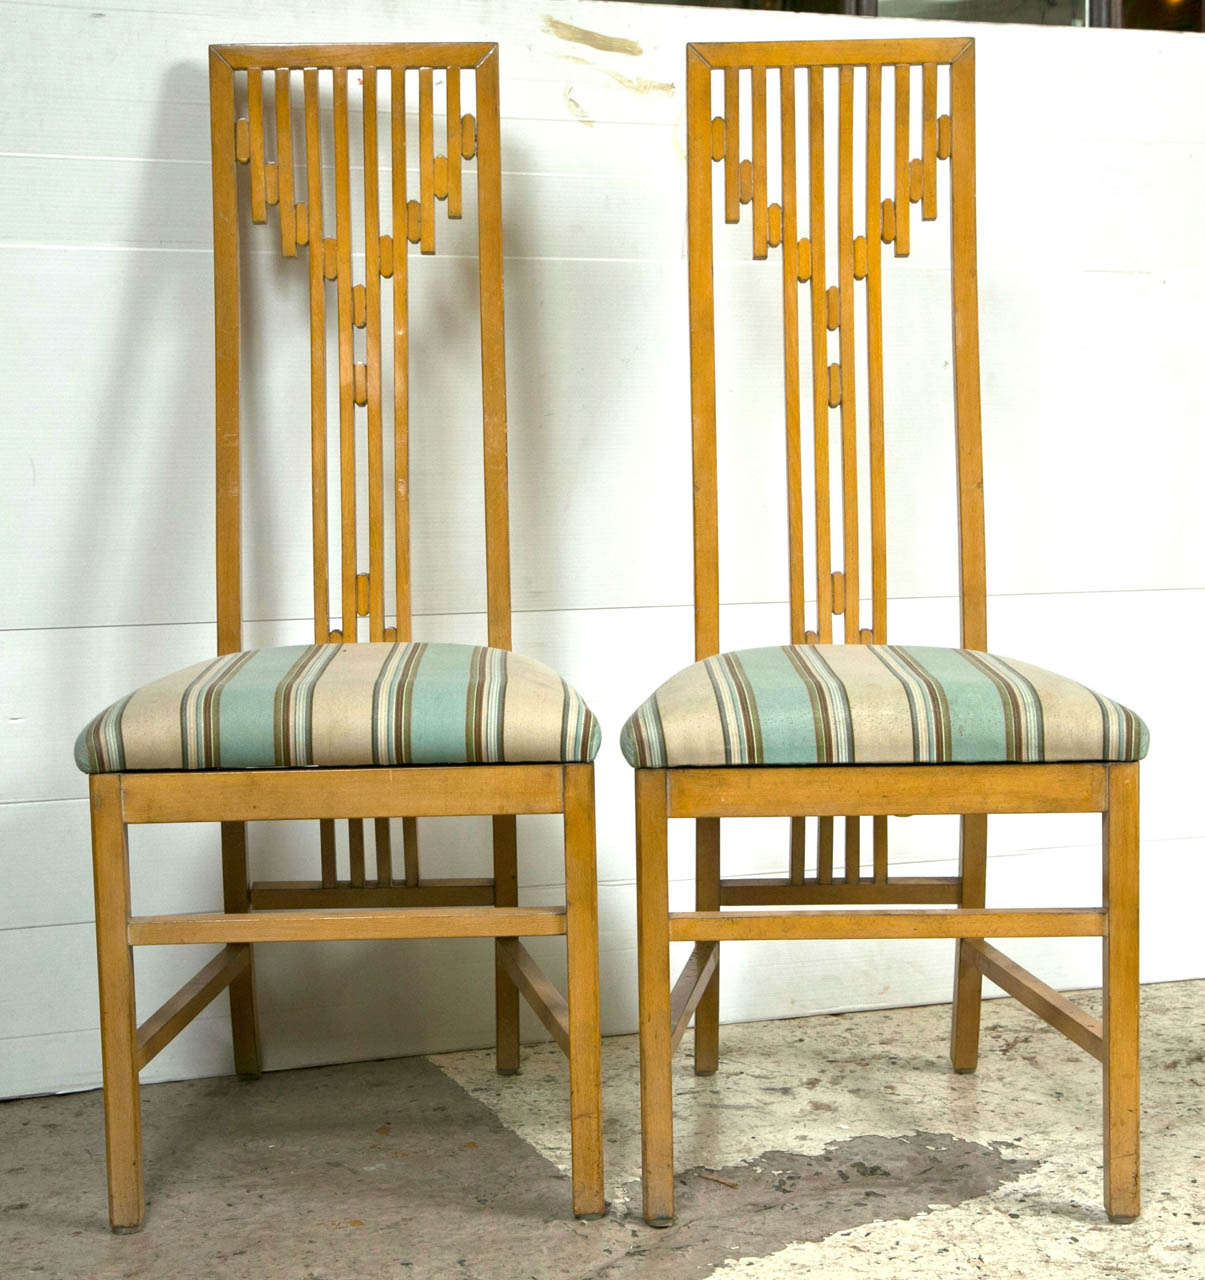 Set of 6 arts and crafts style dining chairs style of james mont at 1stdibs - Arts and crafts dining room furniture ...